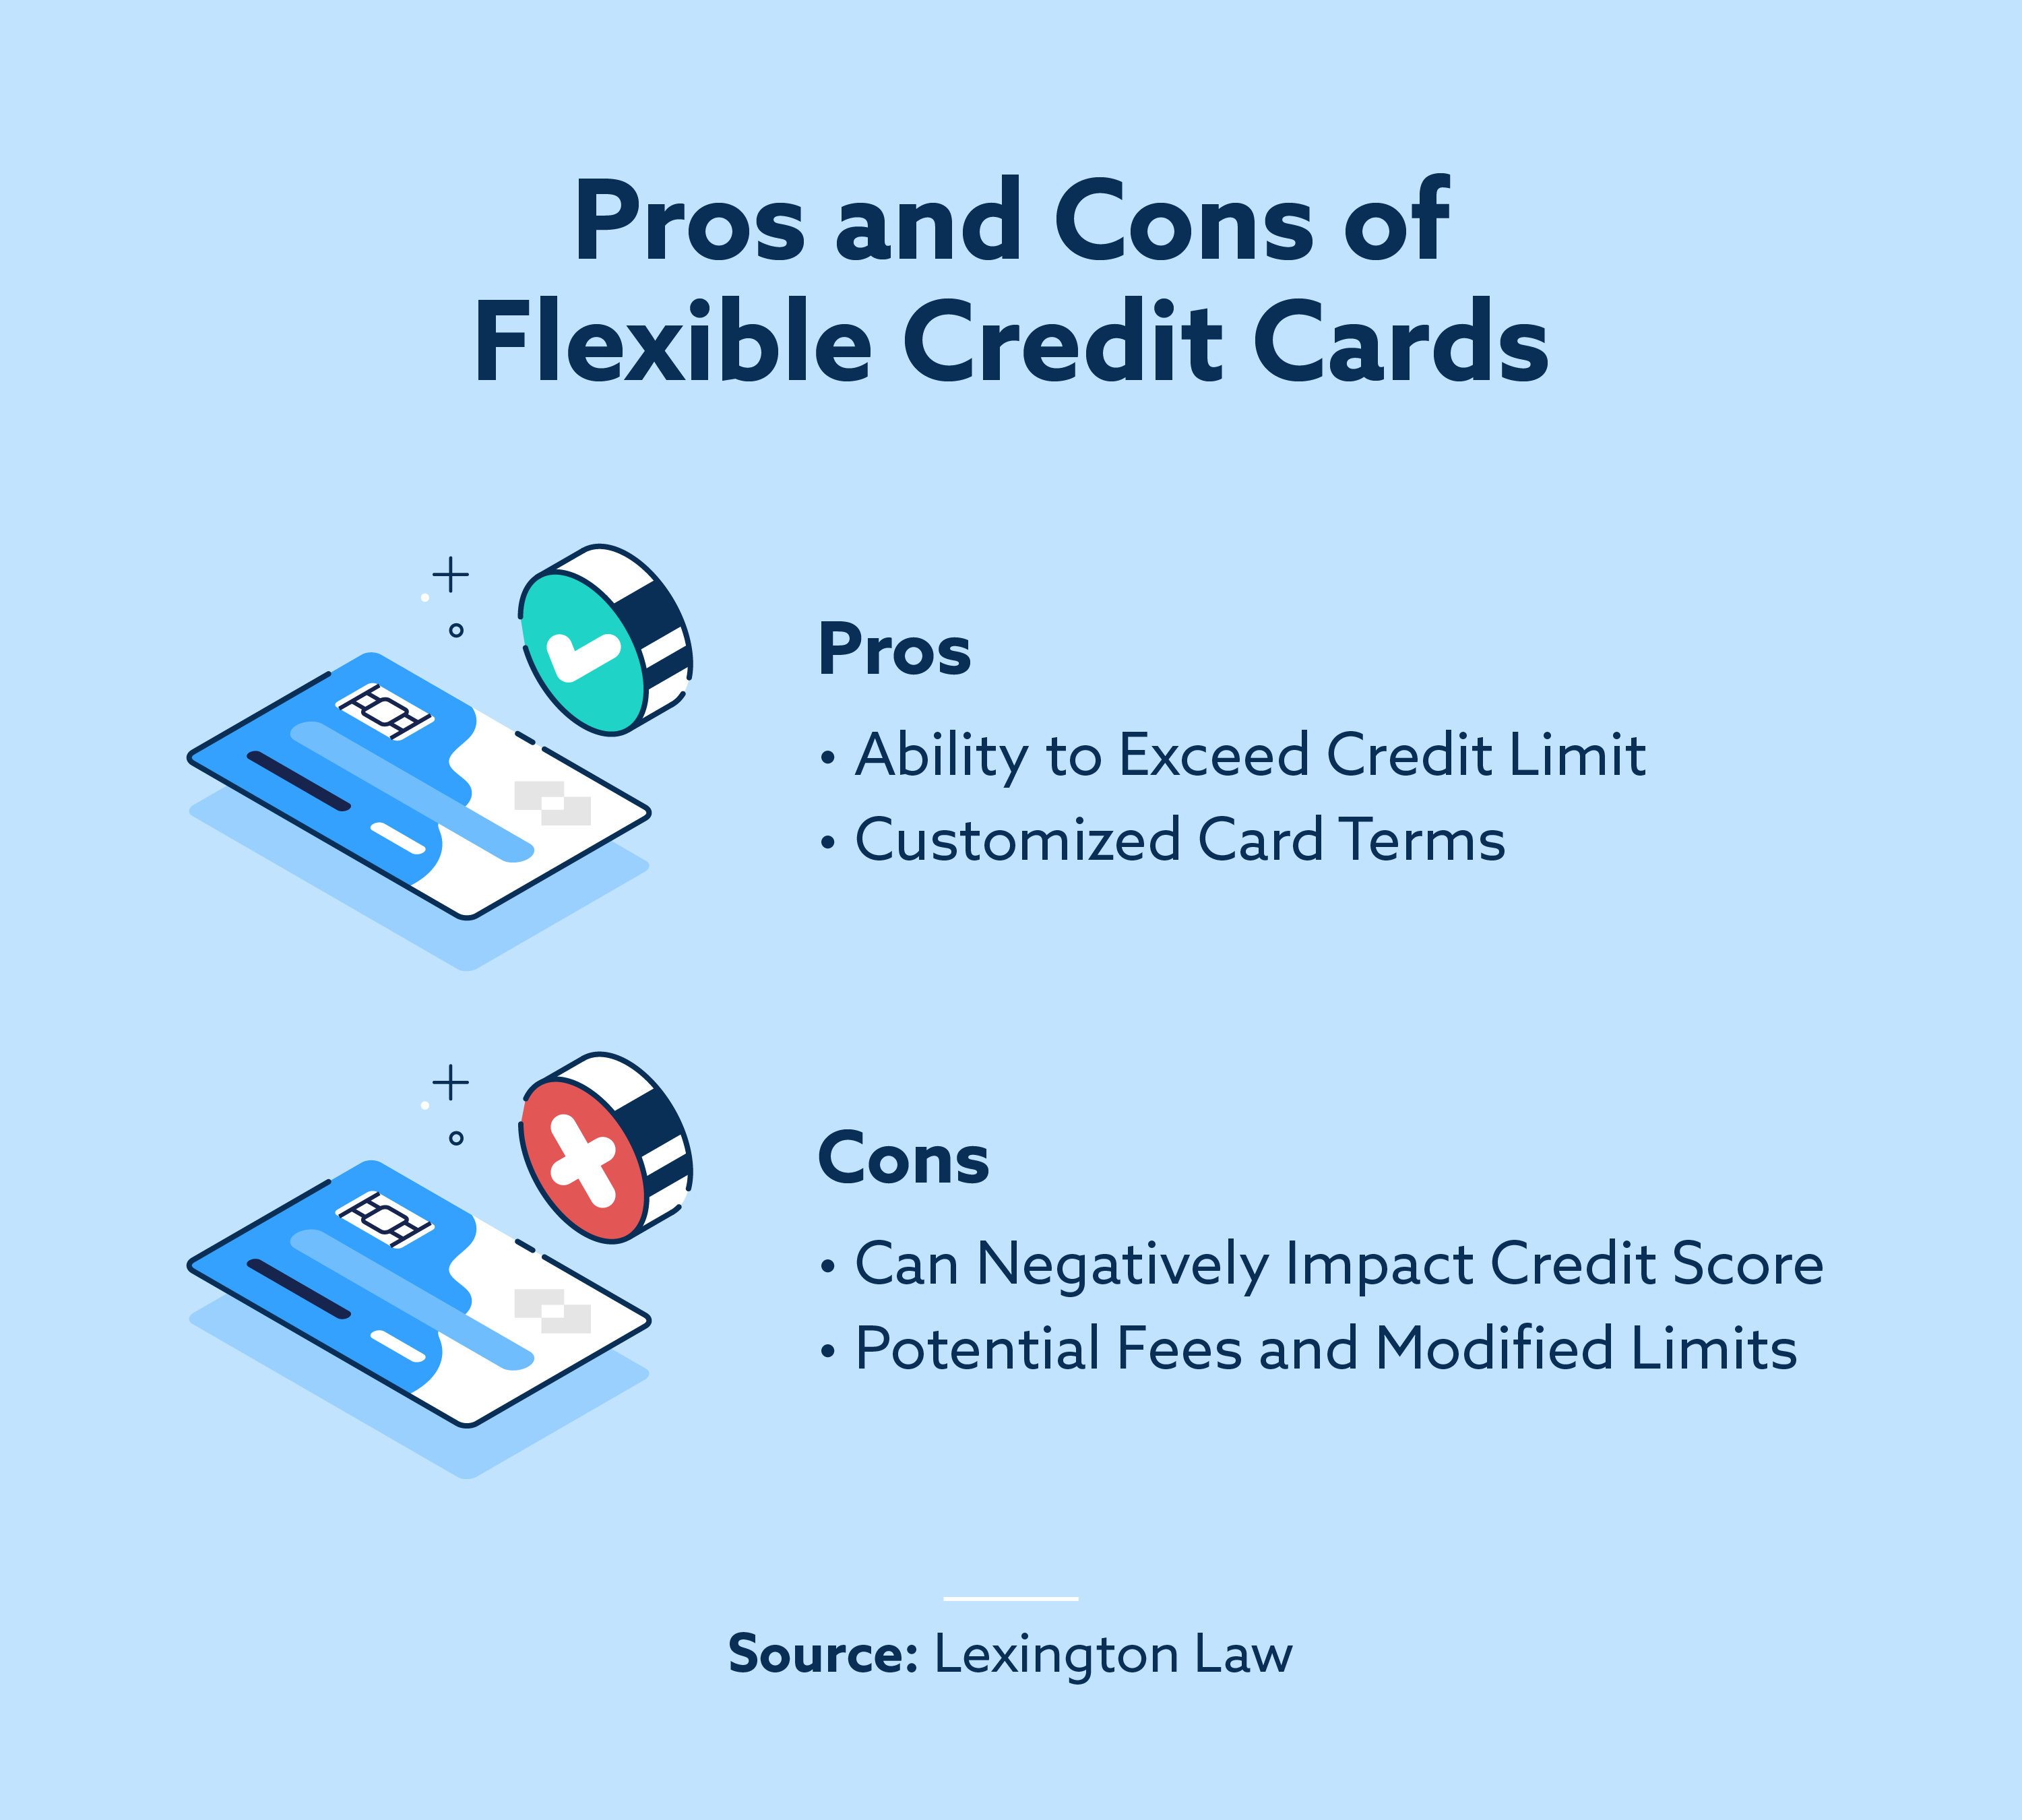 Pros and cons of flexible credit cards